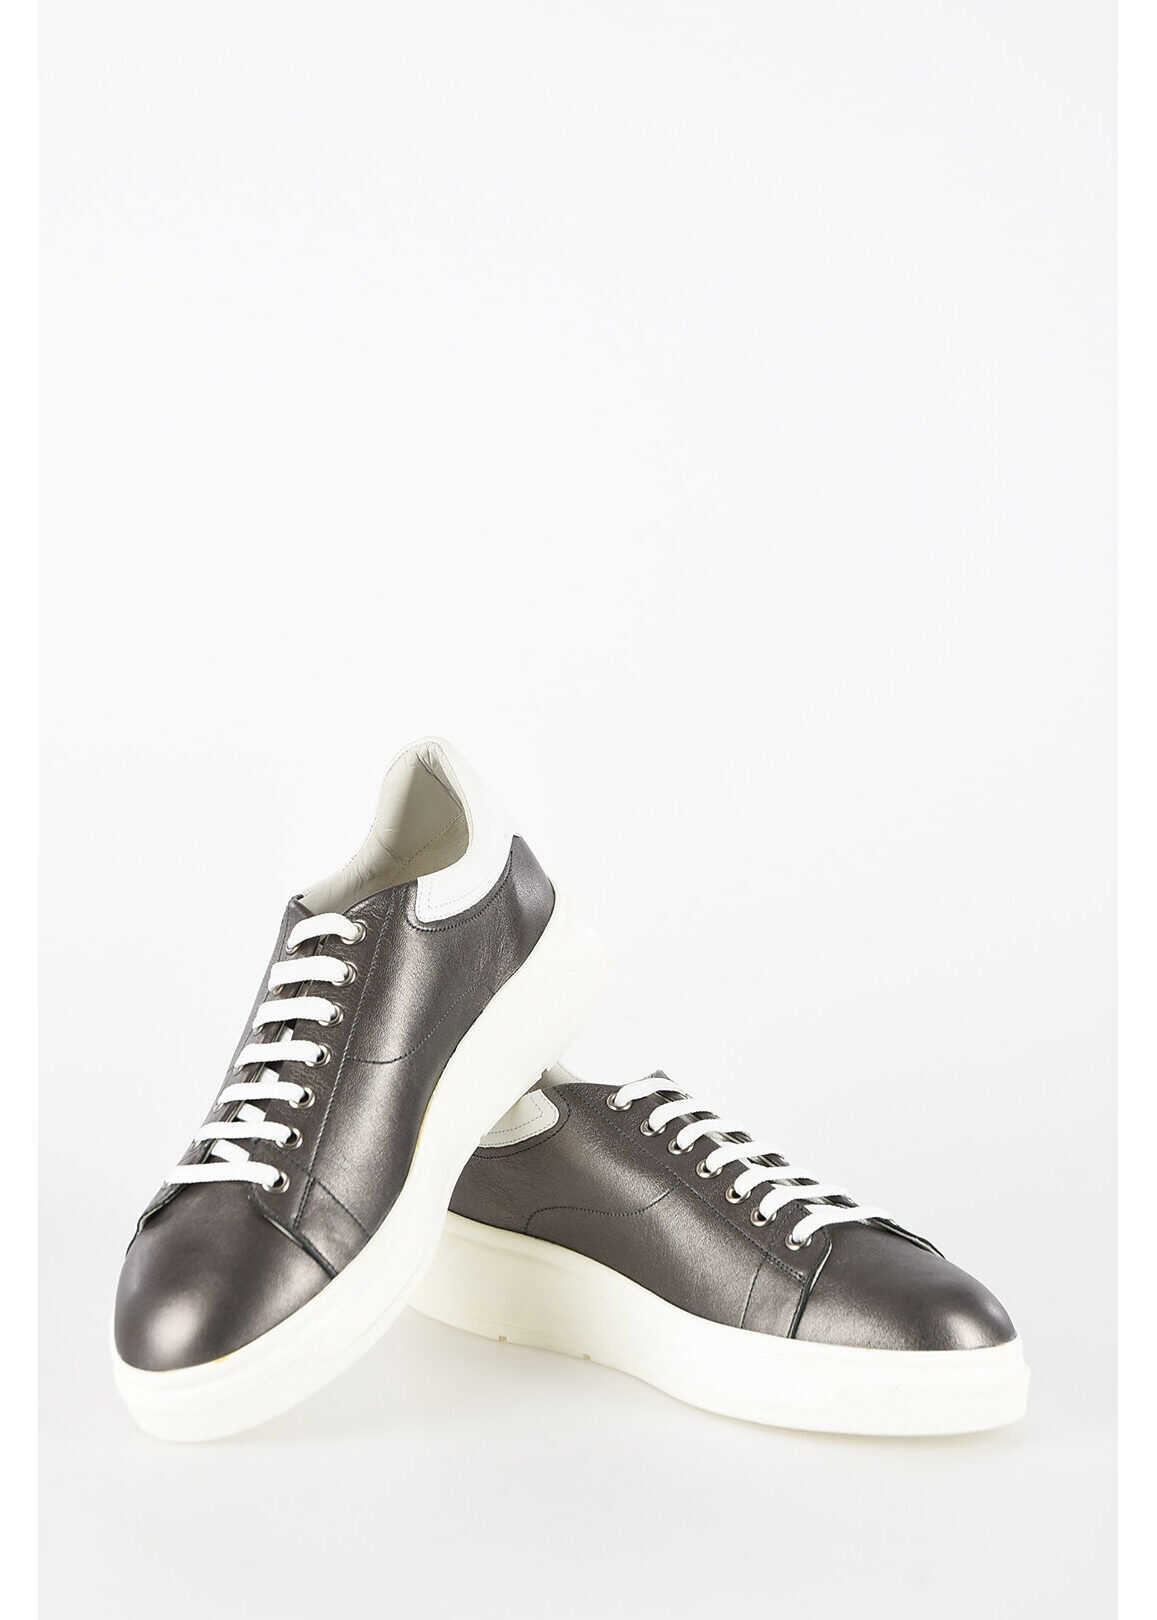 Armani EMPORIO Leather Sneakers GRAY